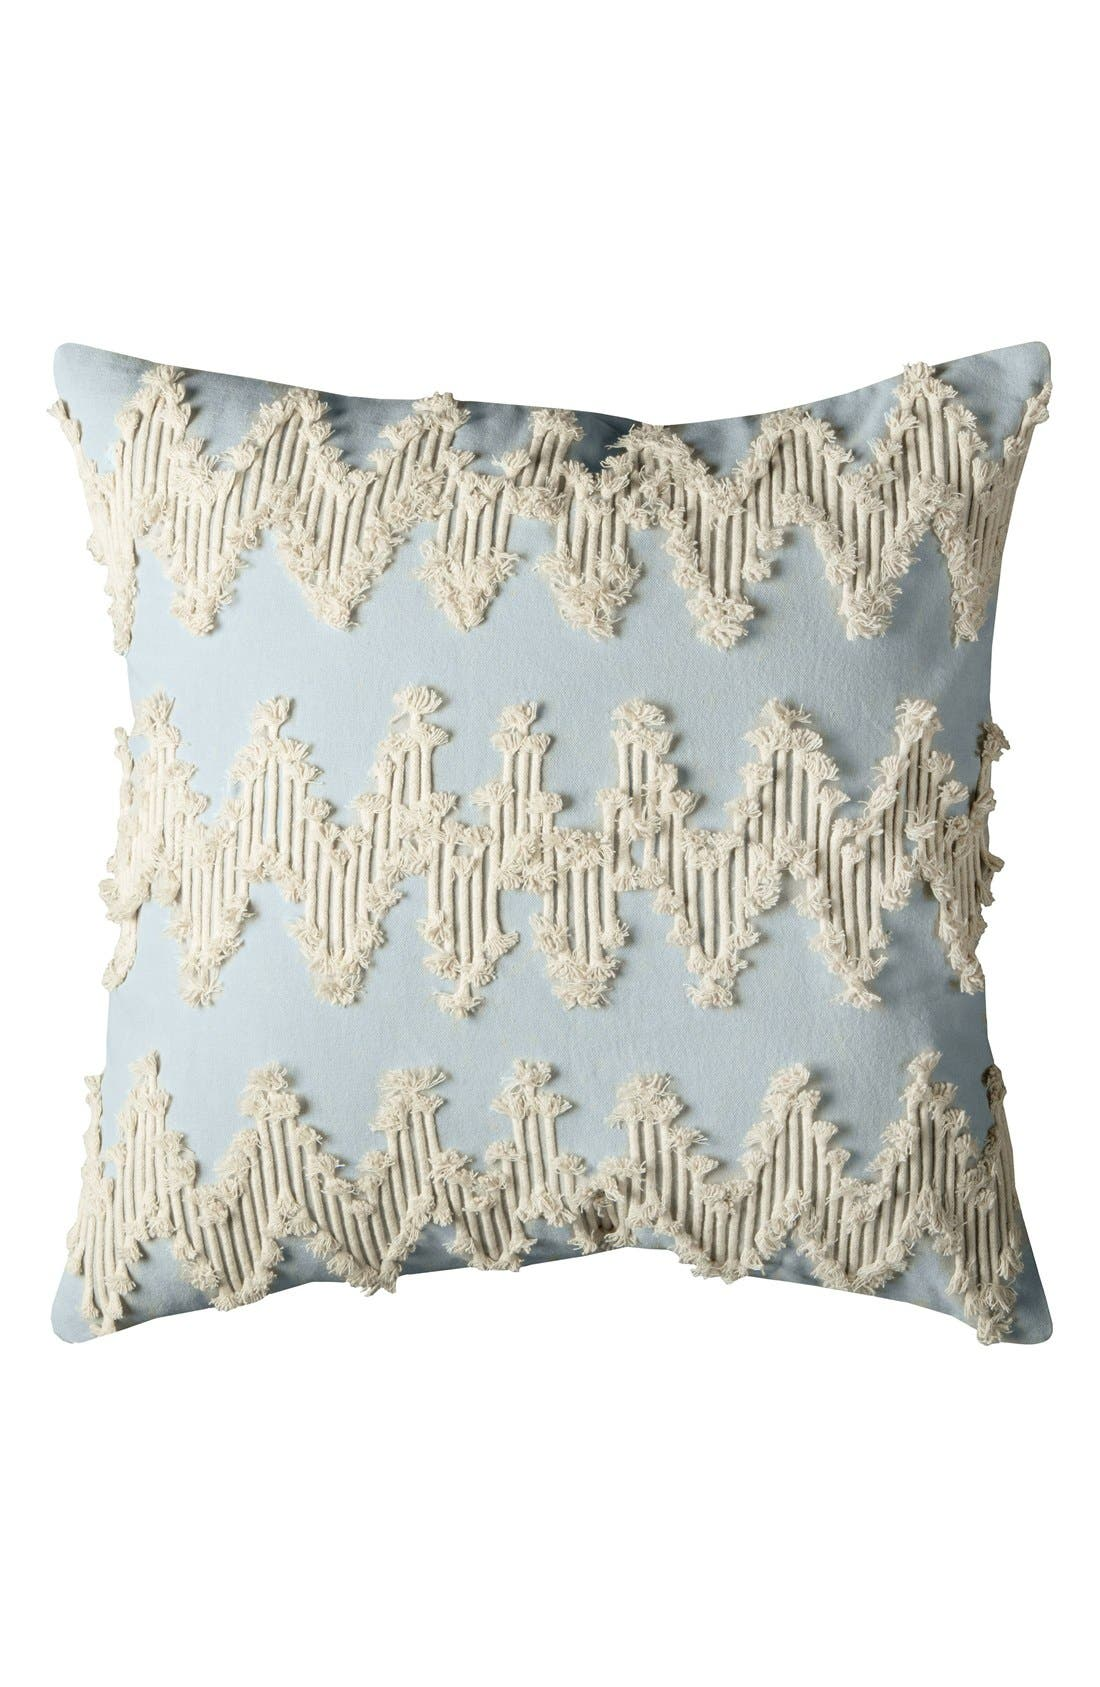 Embroidered Chevron Pillow,                         Main,                         color, 400